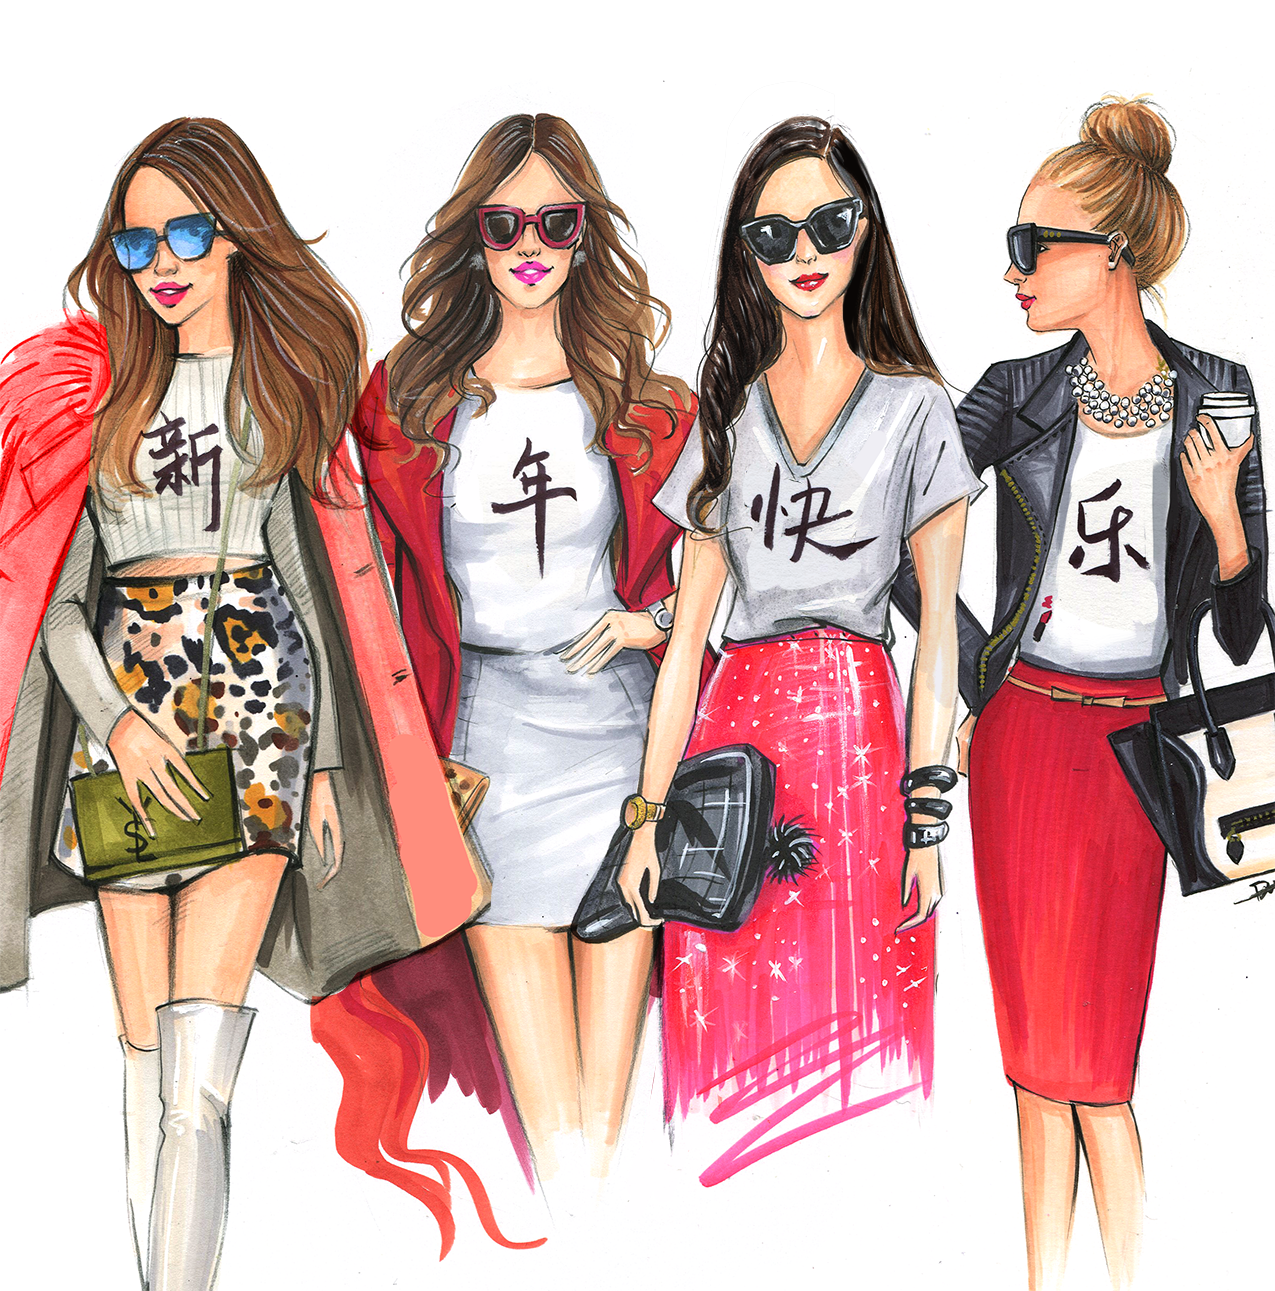 Fashion sketches new fashion sketches - Fashionistas Celebrate Chinese New Year By Houston Fashion Illustrator Rongrong Devoe More Fashion Illustrations At